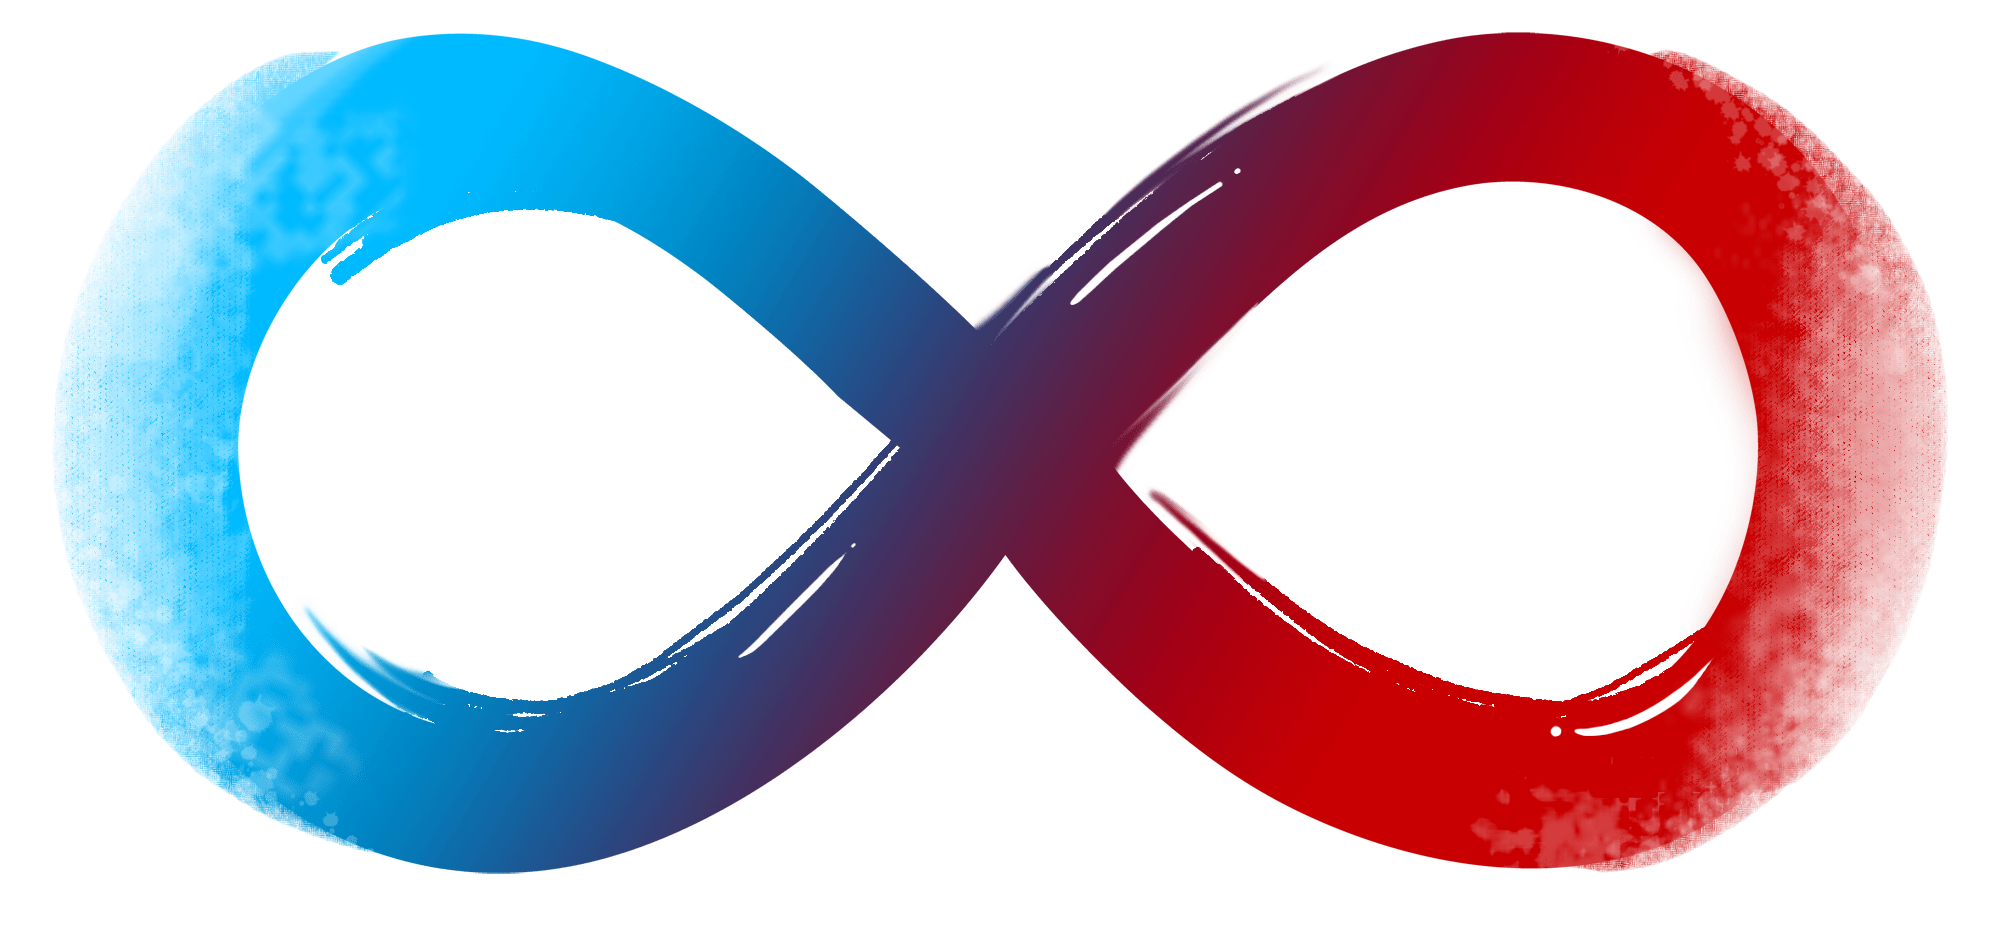 Infinity Symbol Png Images Free Download